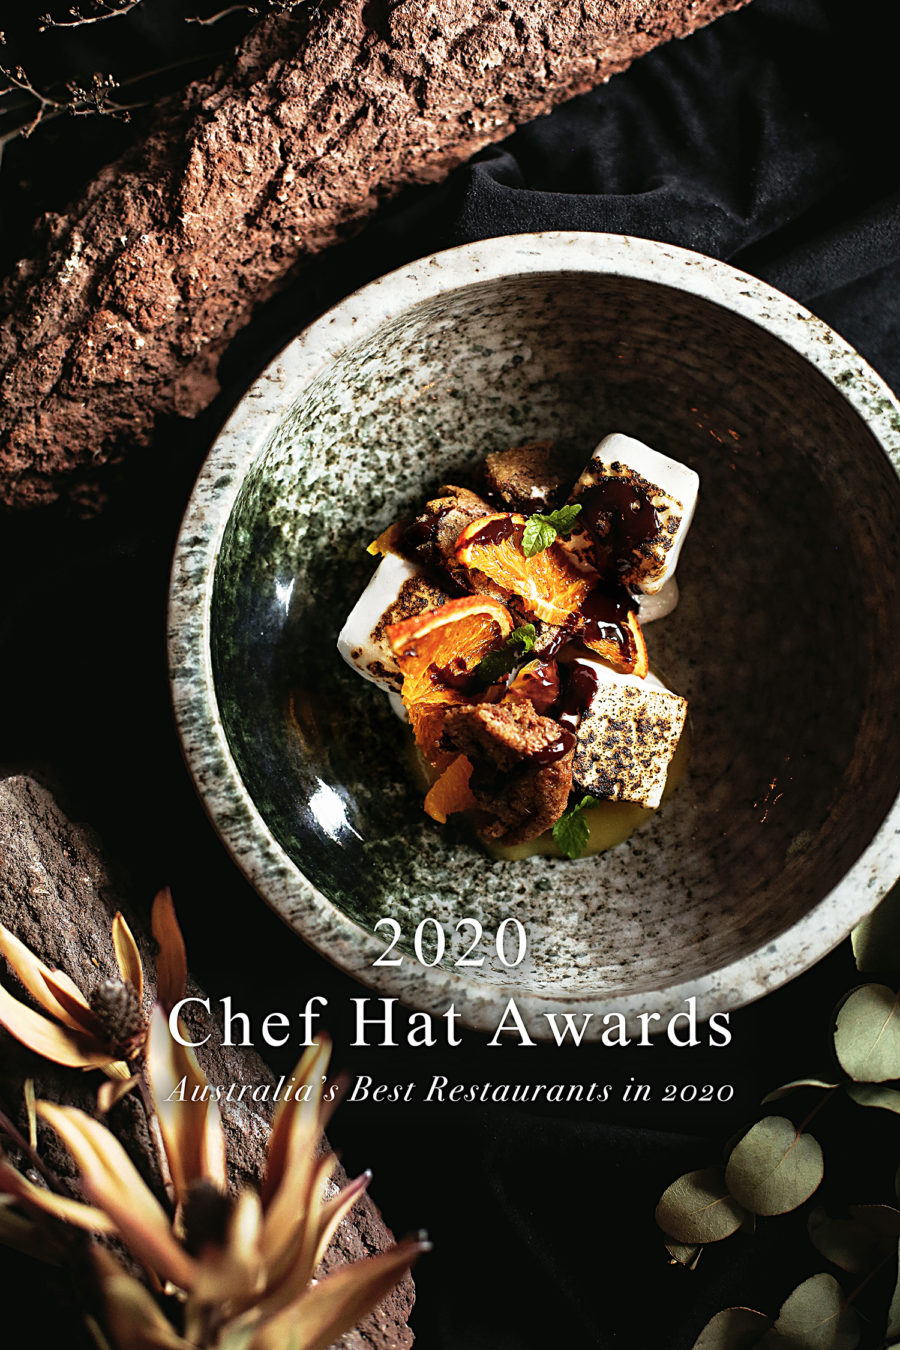 Top 10: Deer Duck Bistro | AGFG 2020 Chef Hat Awards